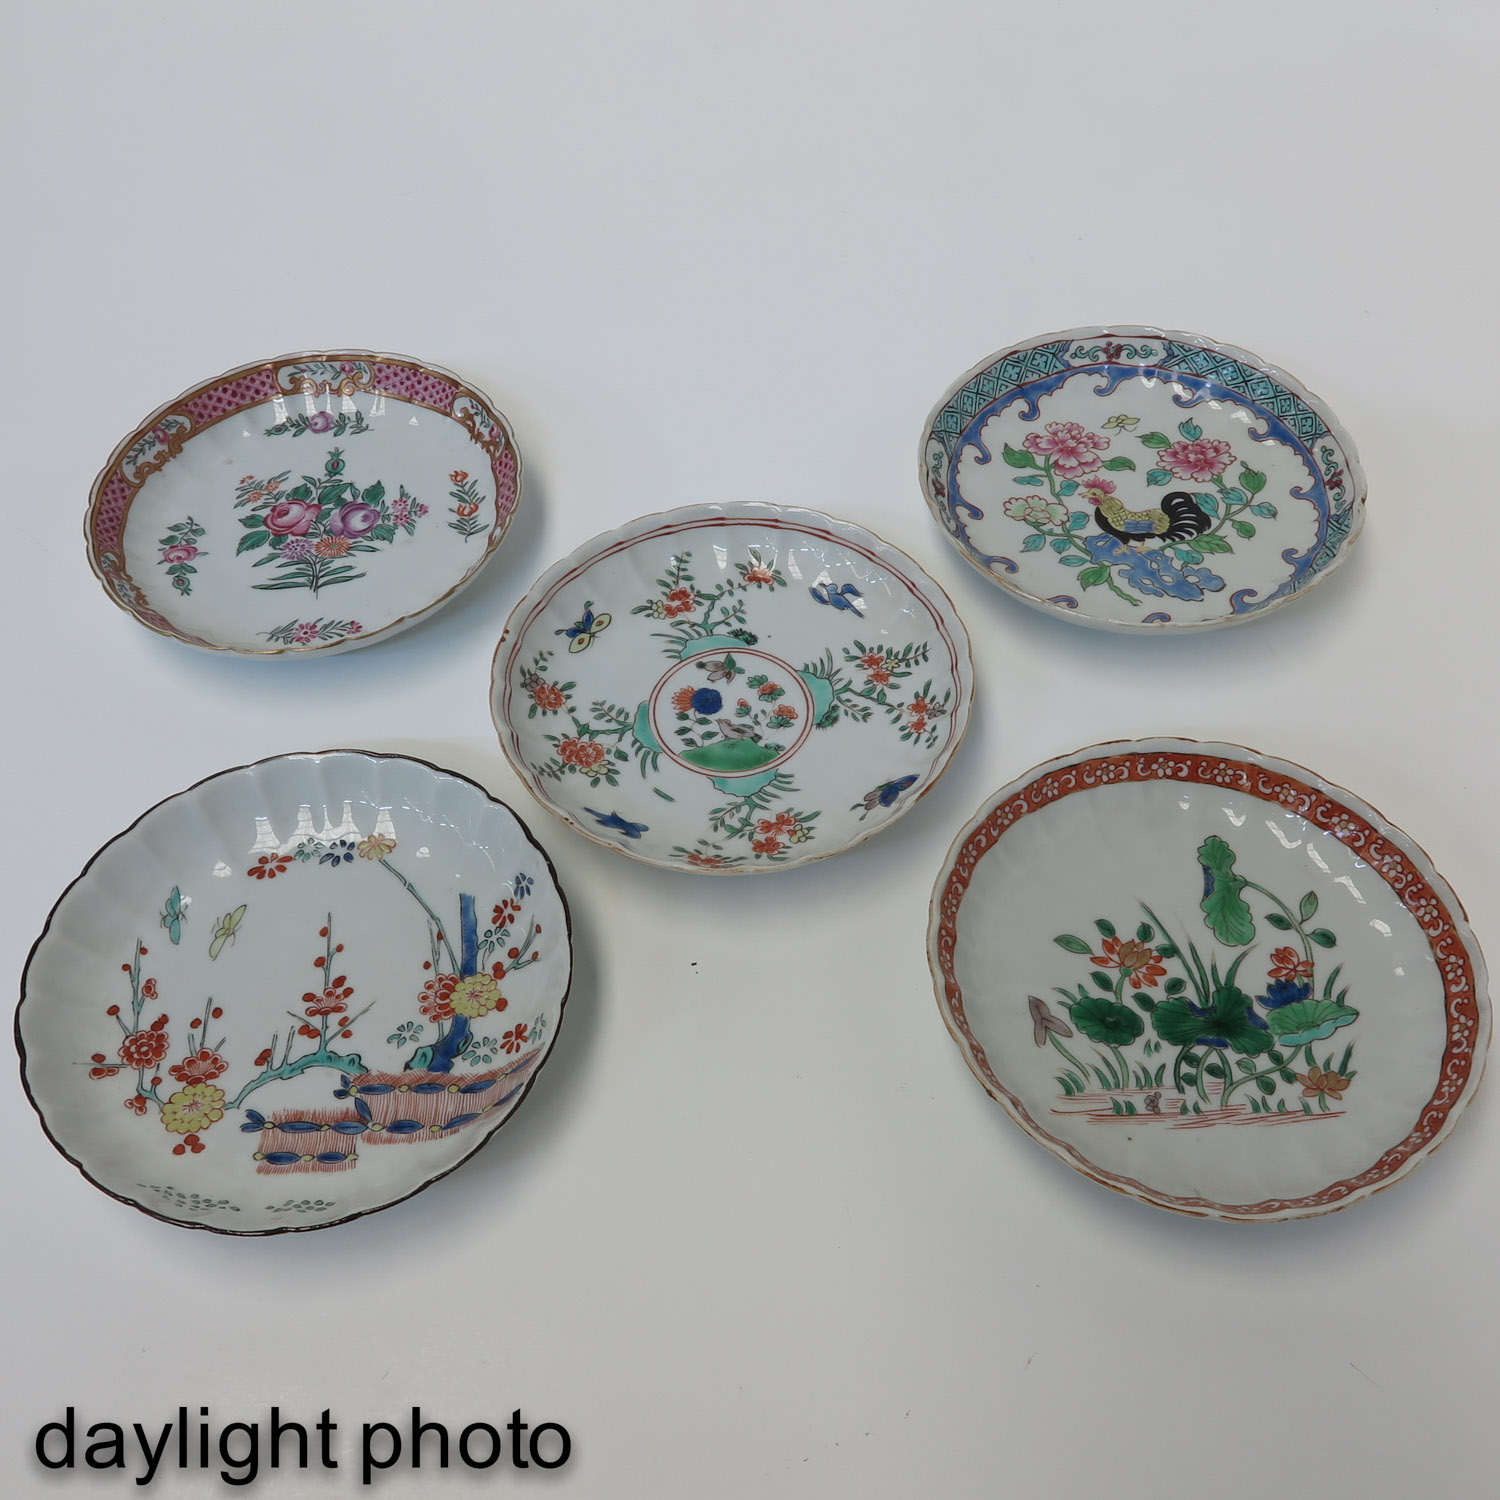 A Lot of 7 Small Plates - Image 9 of 10